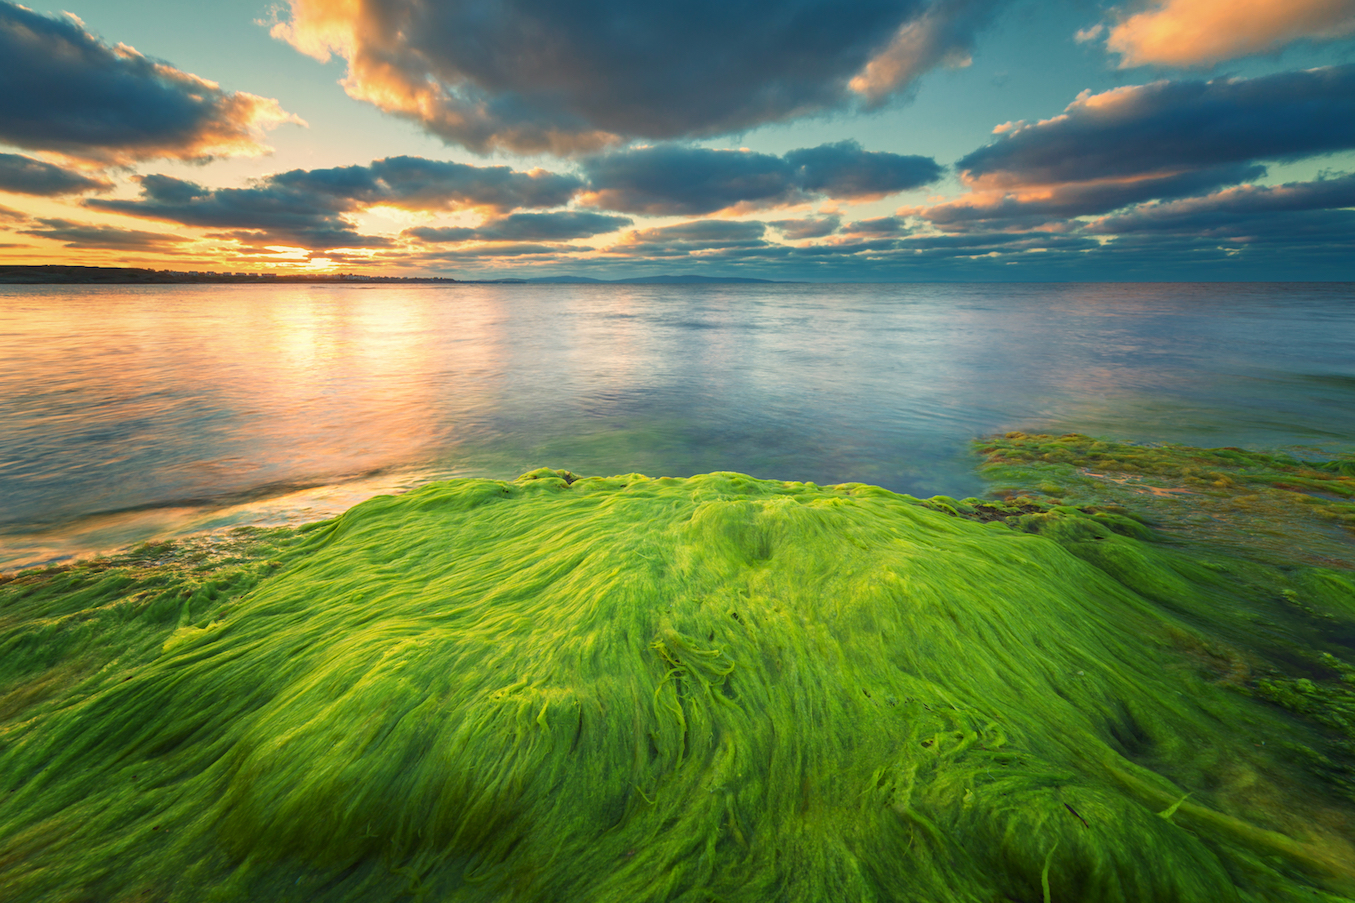 Algae just might be at the center of a huge defense against climate change, said an international team of researchers led by Cornell University.